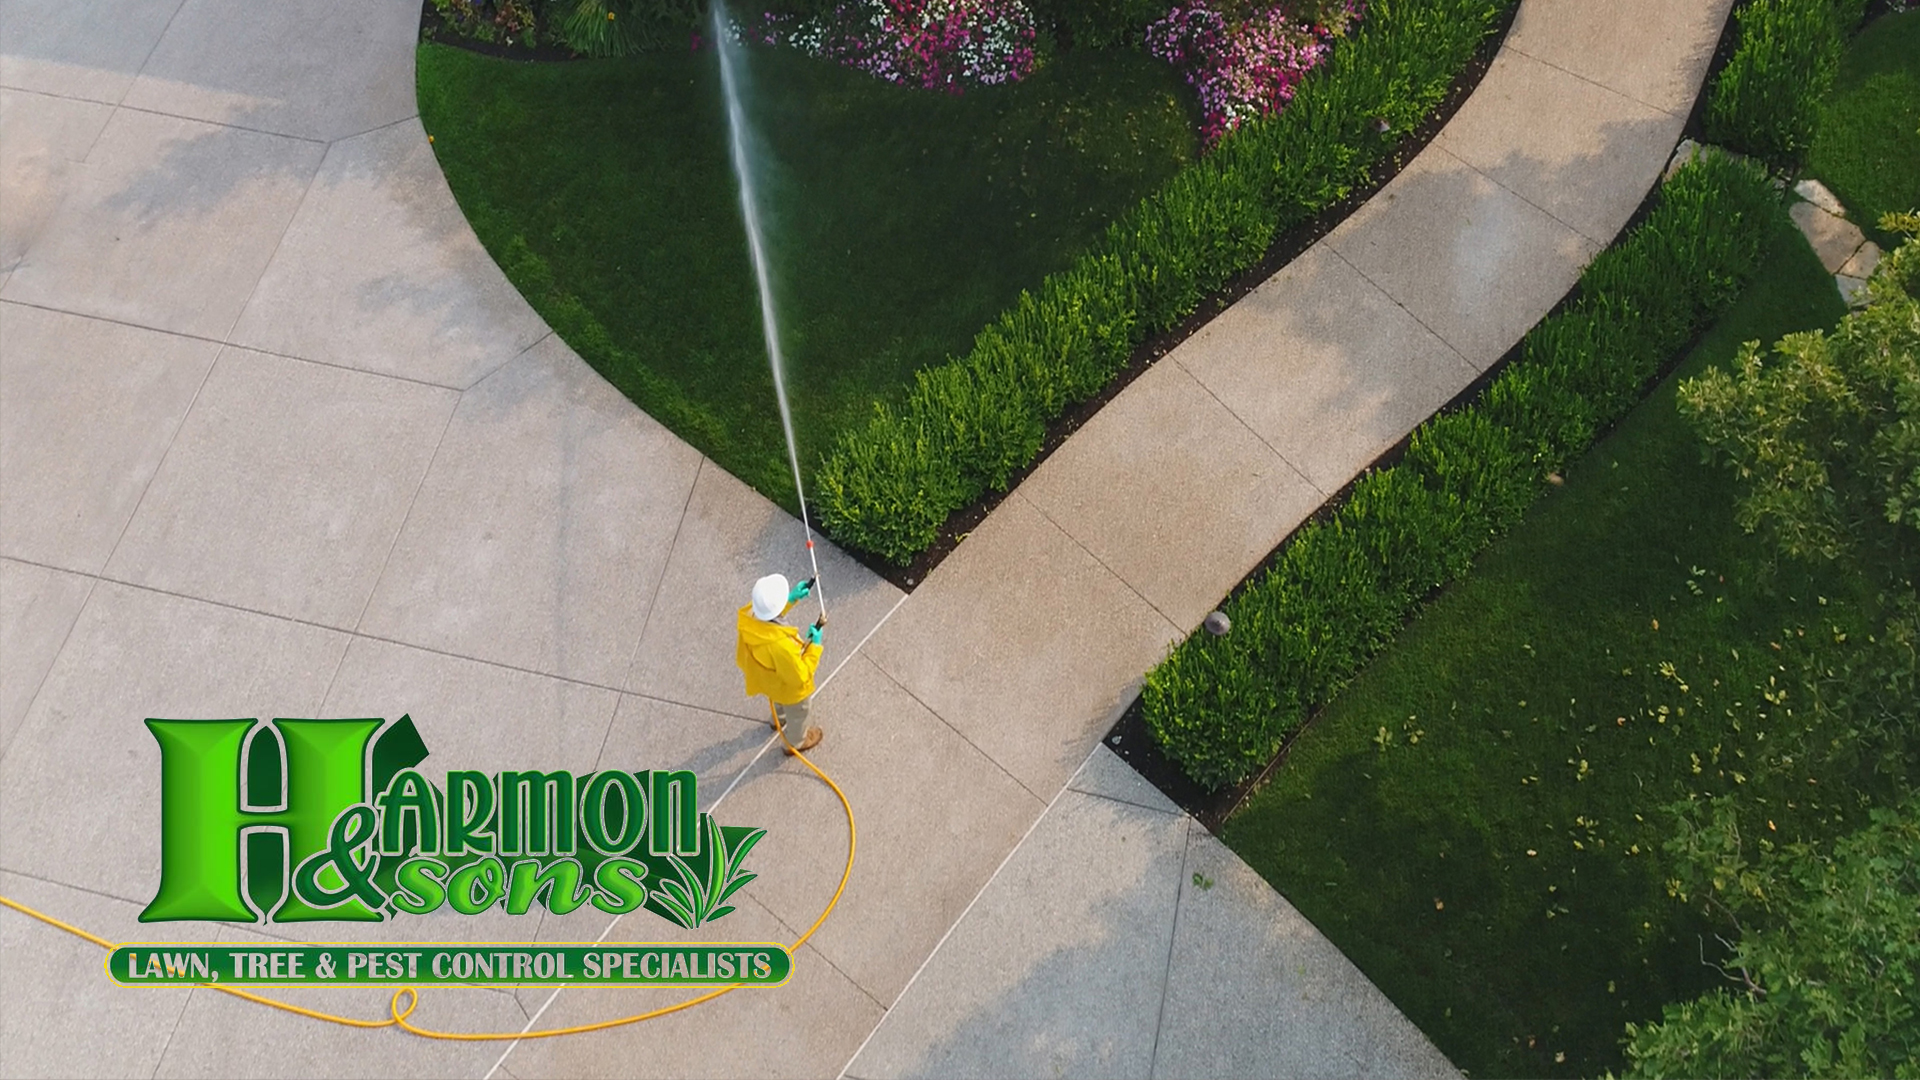 Harmons and Sons lawn care